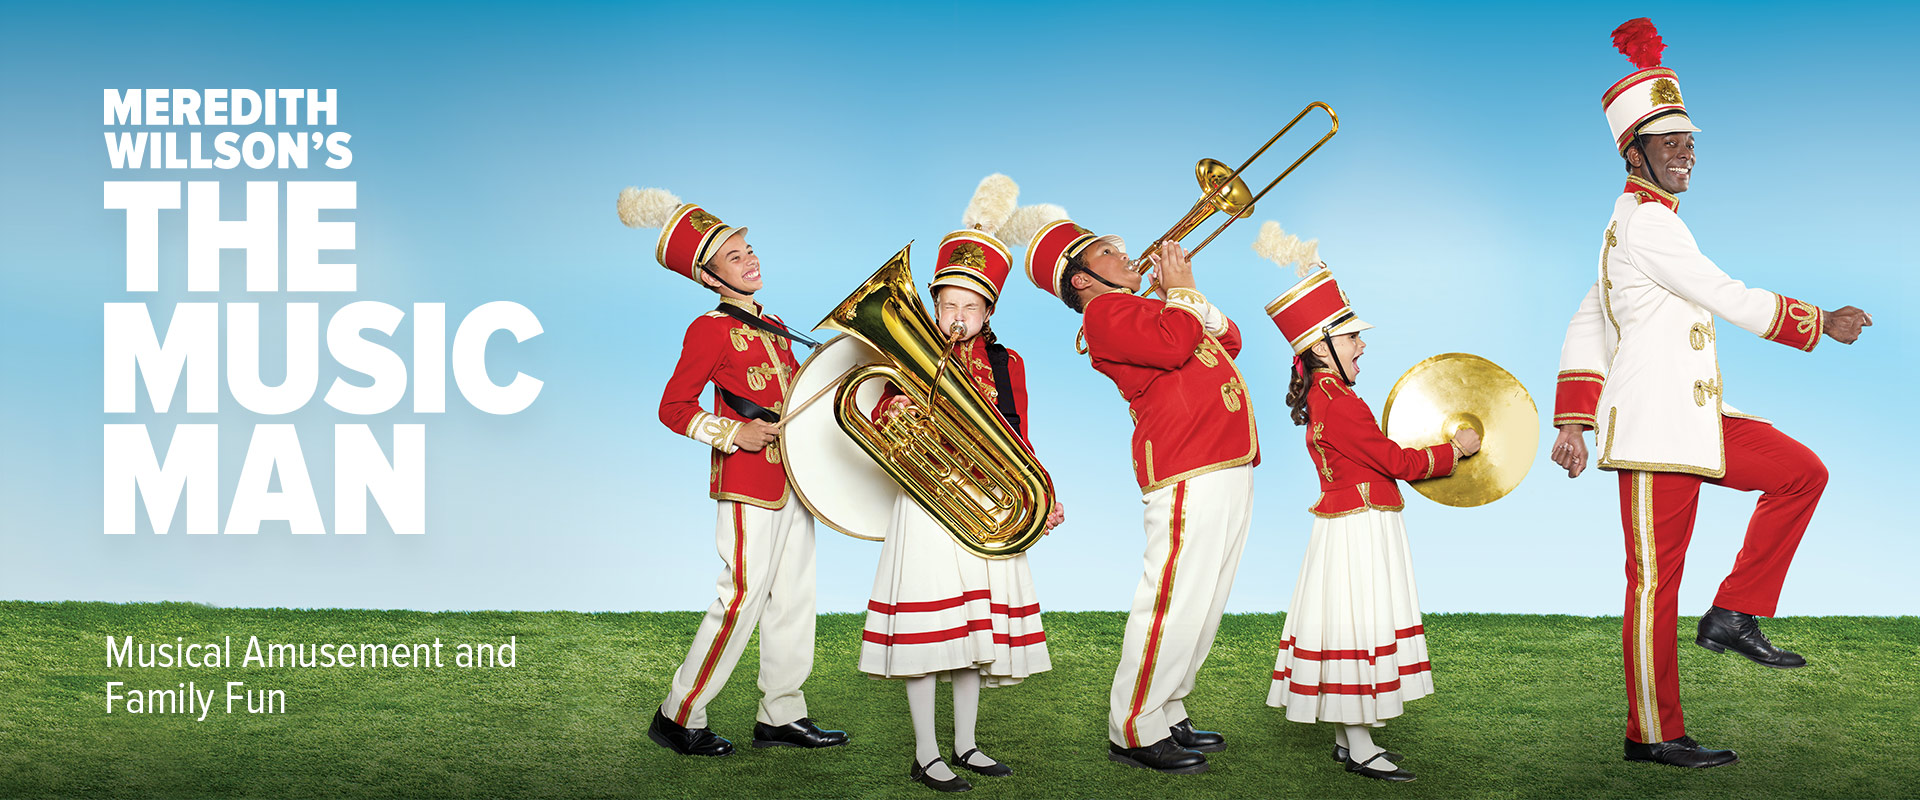 Publicity image from The Music Man